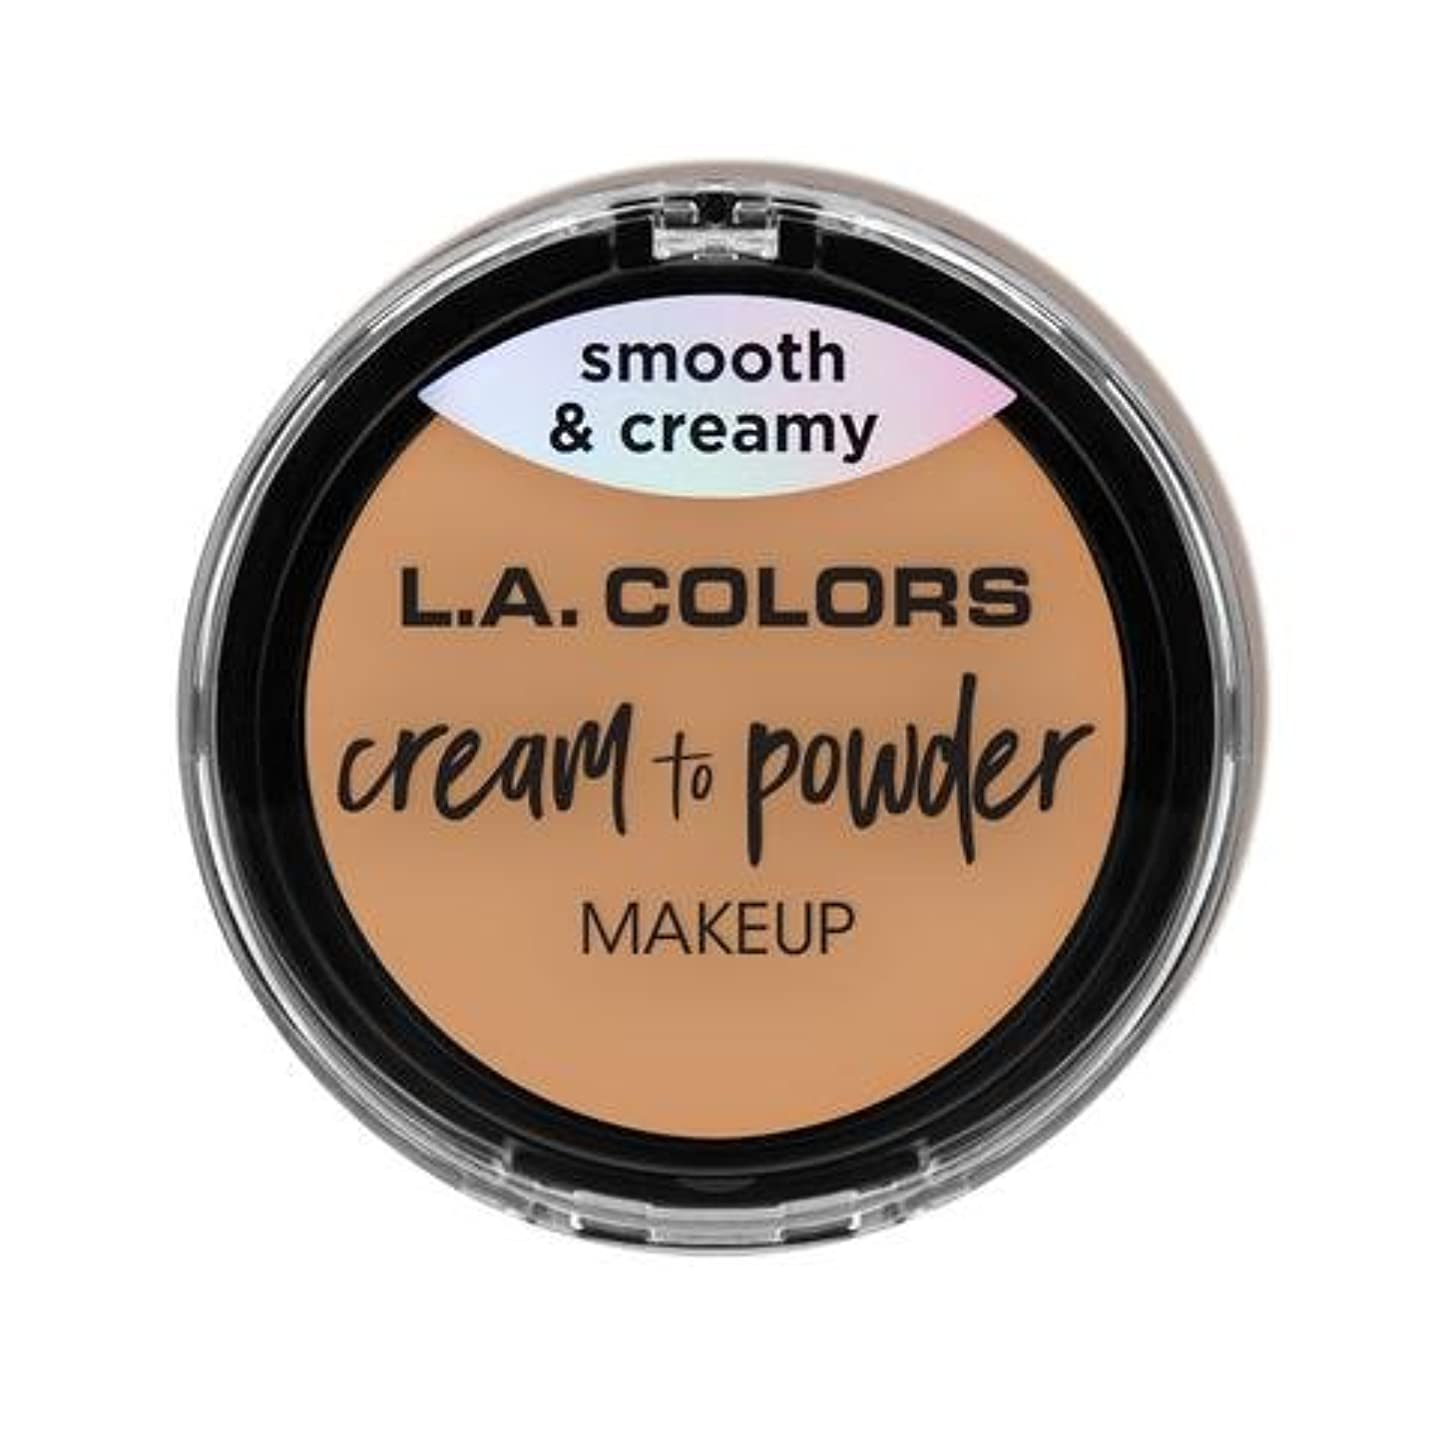 中性アーサーストッキング(3 Pack) L.A. COLORS Cream To Powder Foundation - Honey Beige (並行輸入品)